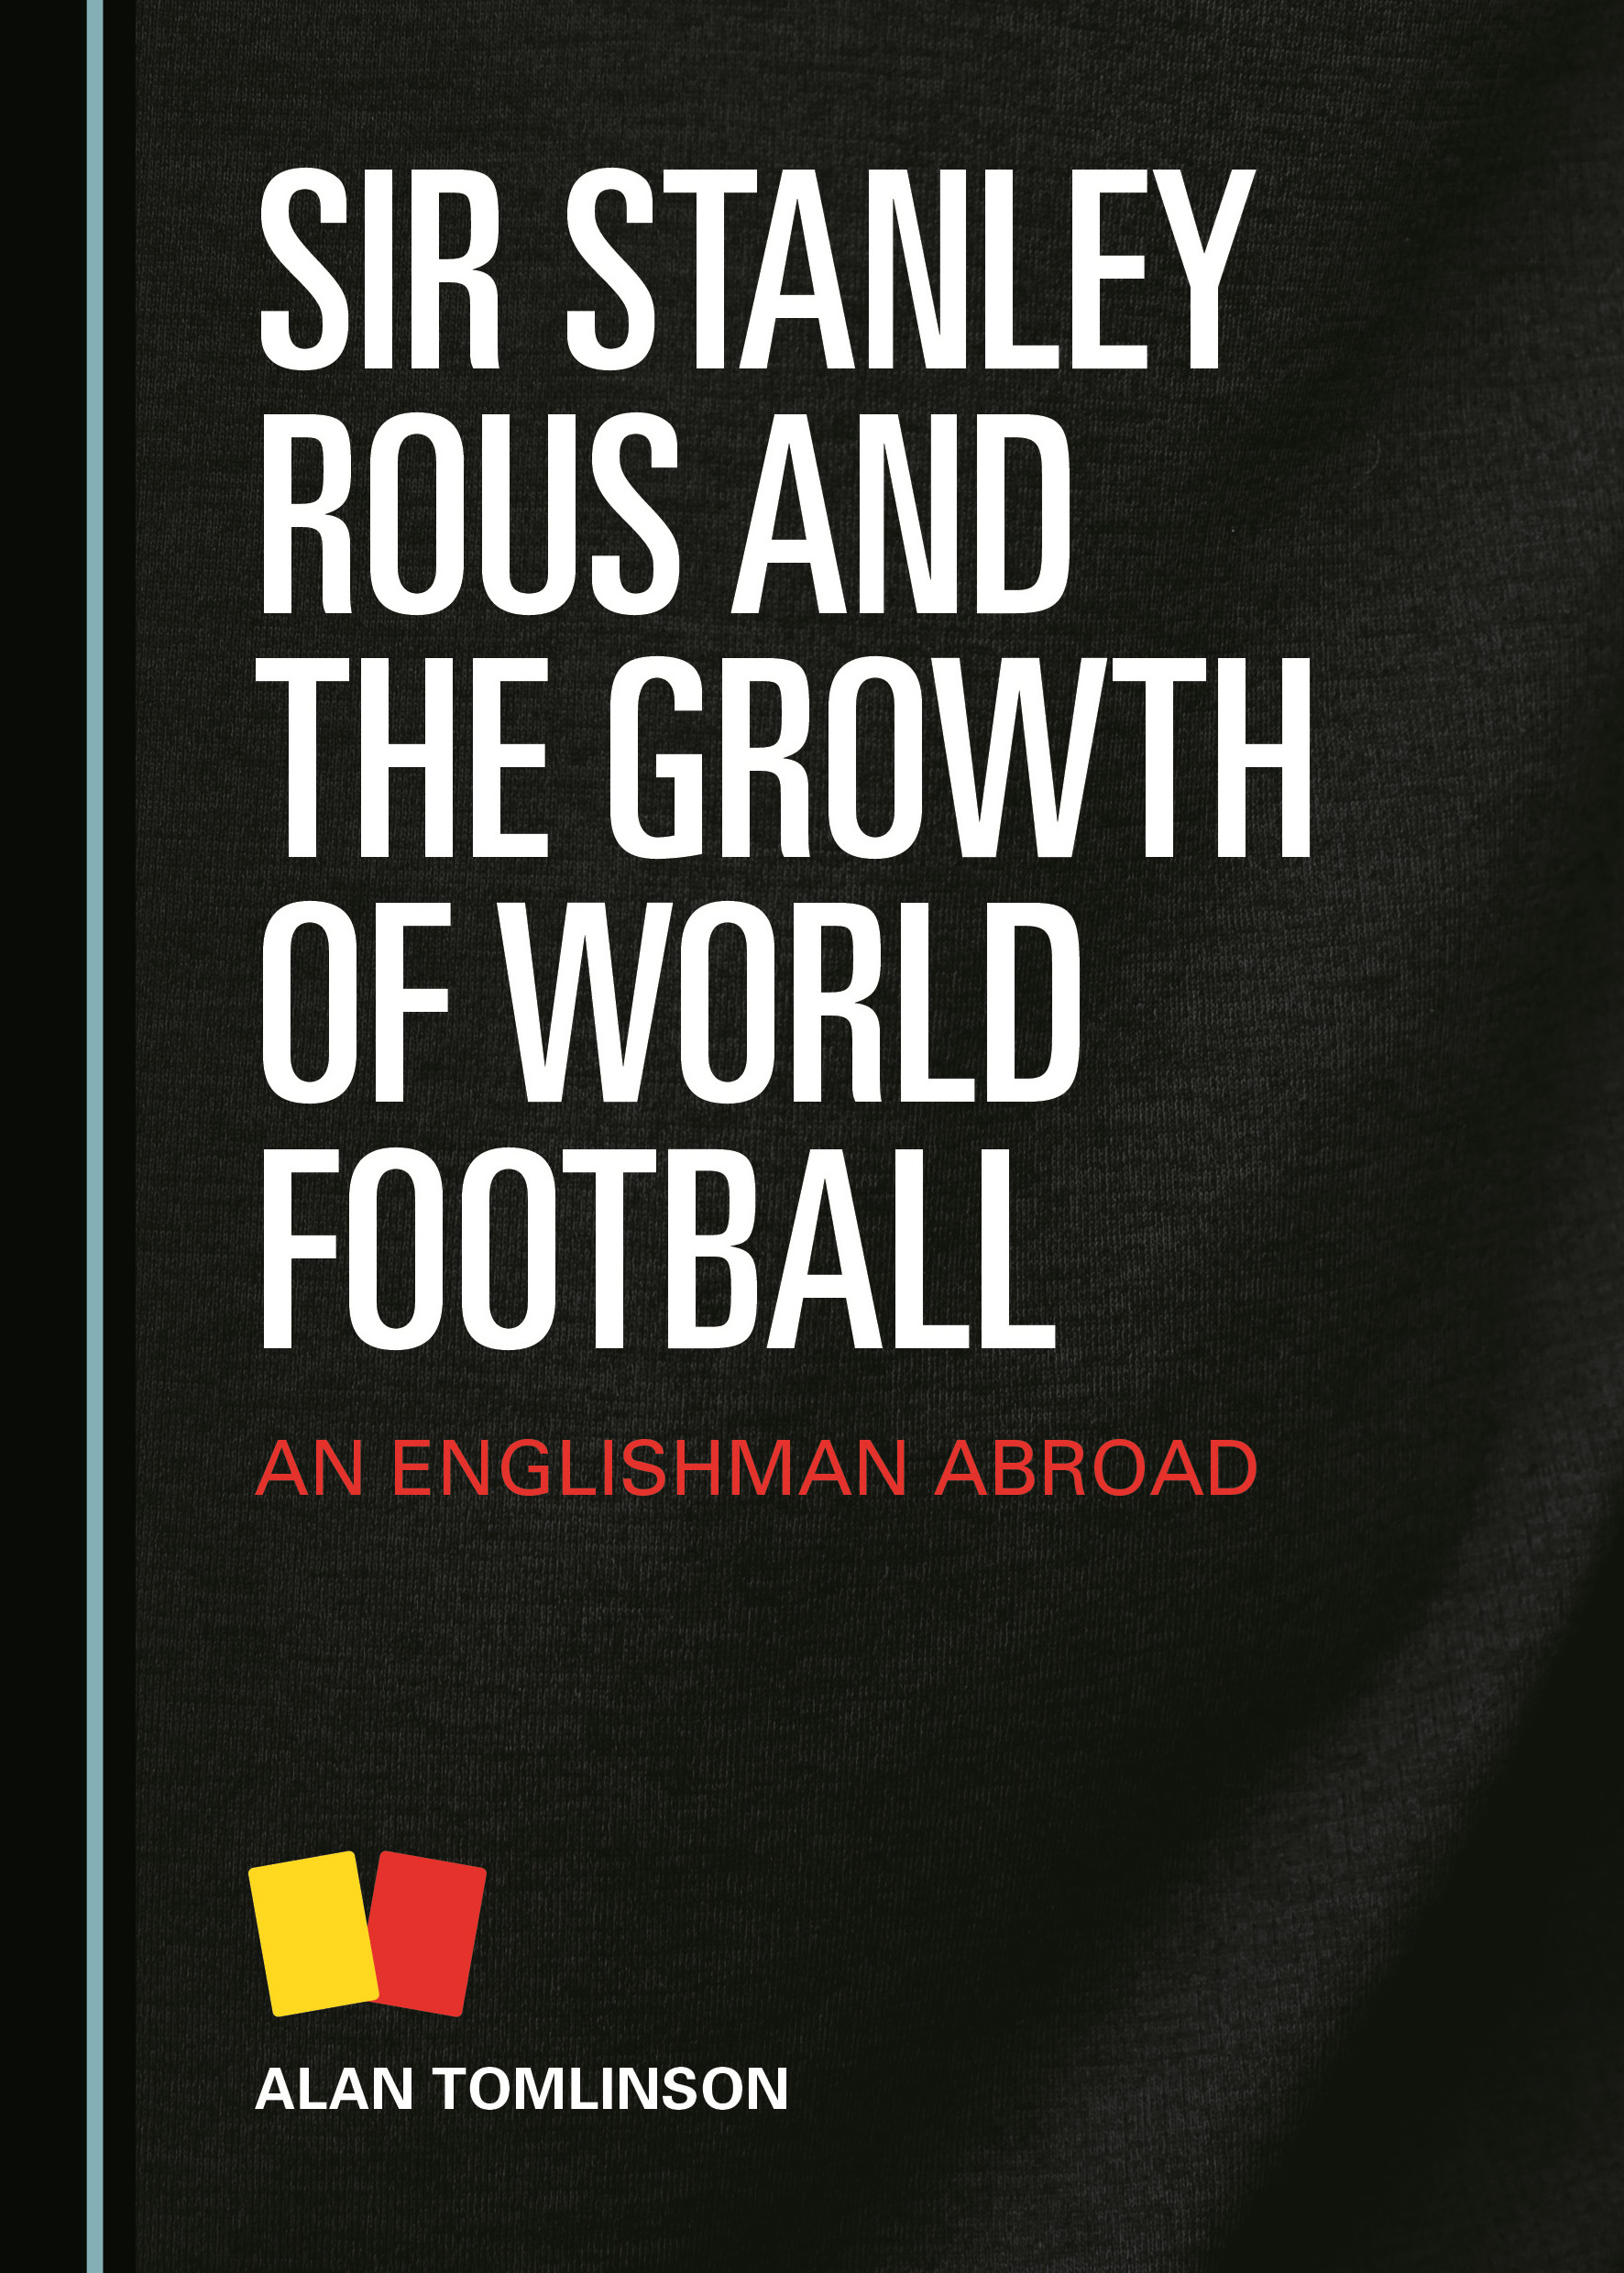 Sir Stanley Rous and the Growth of World Football: An Englishman Abroad